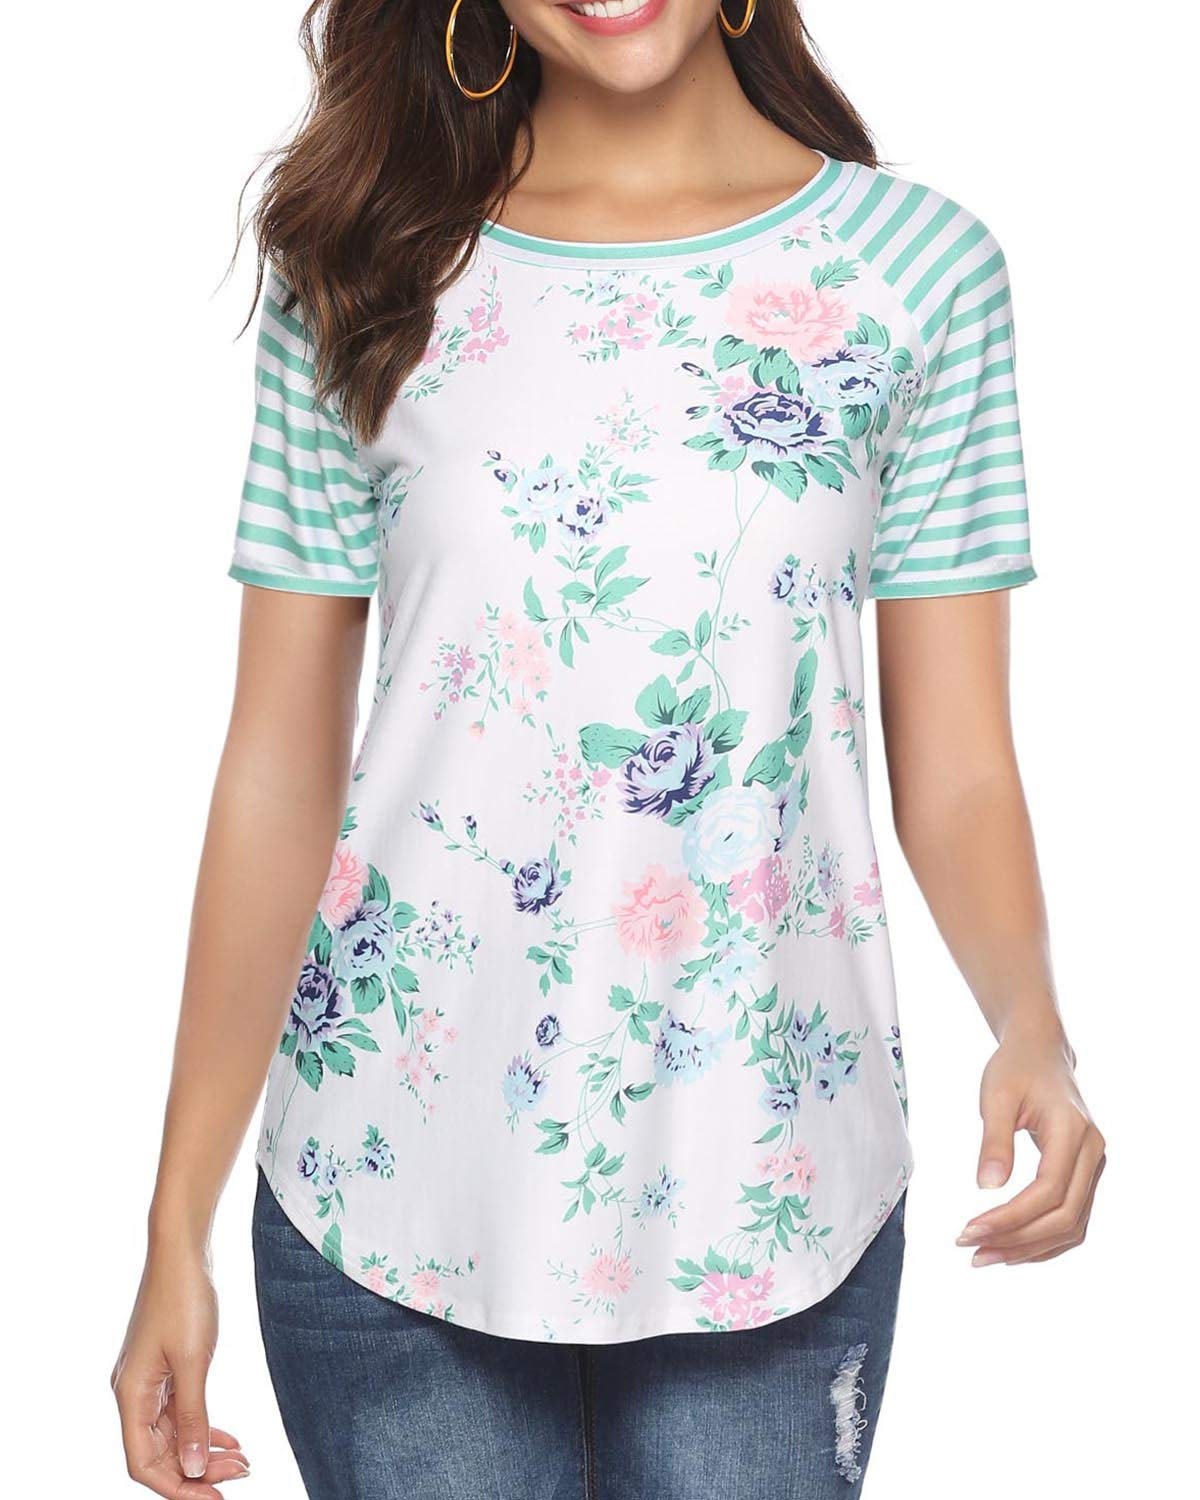 CEASIKERY Women's Blouse 3/4 Sleeve Floral Print T-Shirt Comfy Casual Tops for Women ((US 8-10) Medium, Short Sleeve Floral 014)